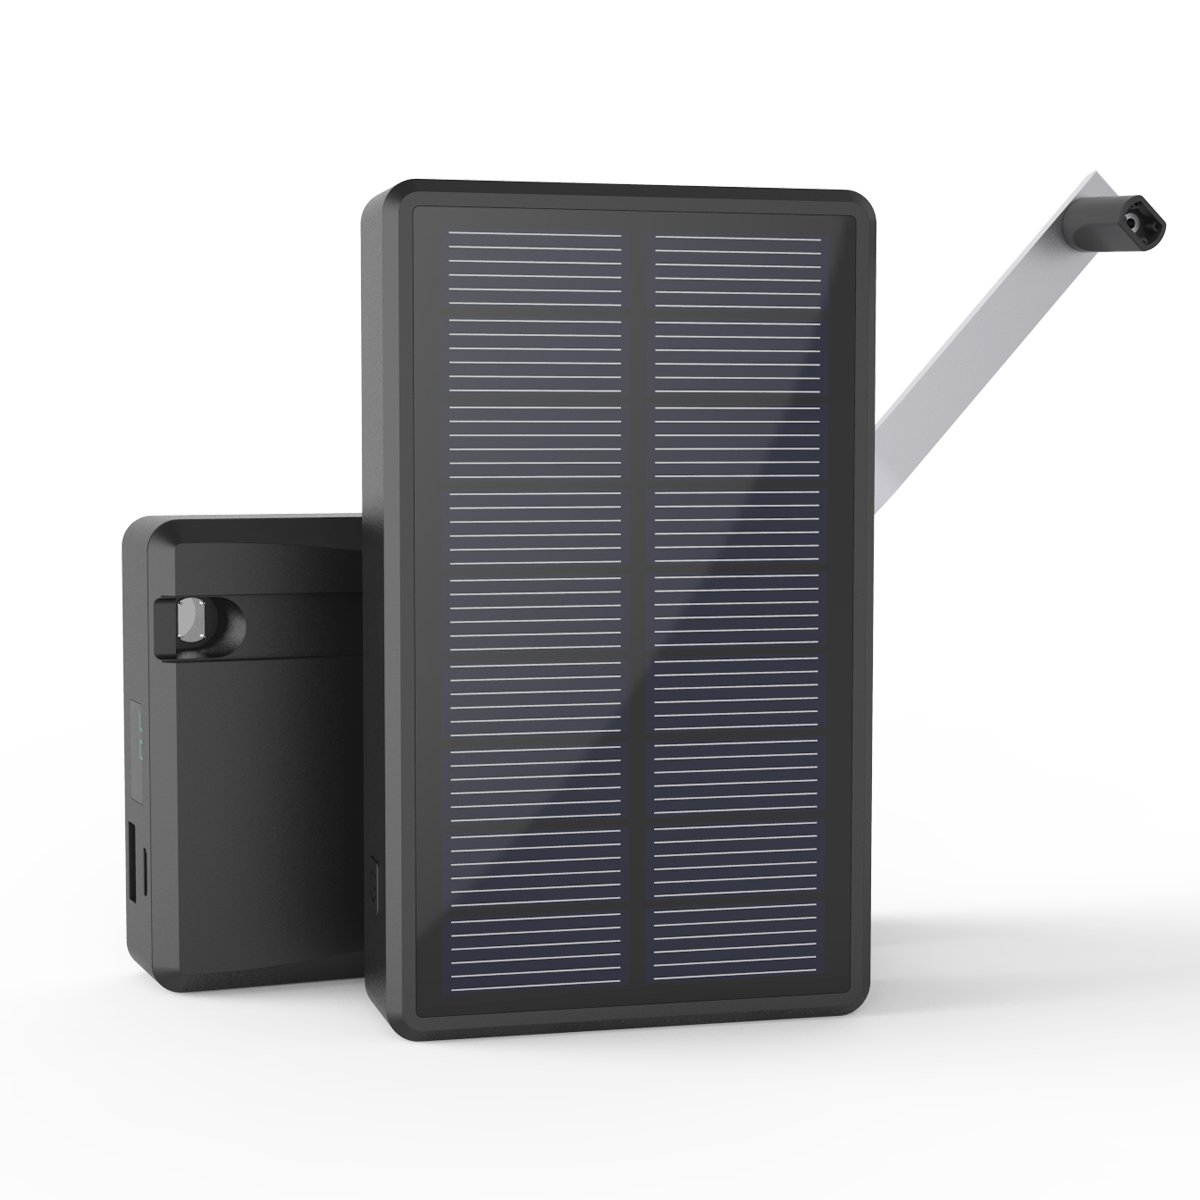 MAXOAK Solar Charger Power Bank External Battery Pack for Smartphone iPhone Samsung Android phones GoPro Camera GPS Tablet and More(7800mAh) by MAXOAK